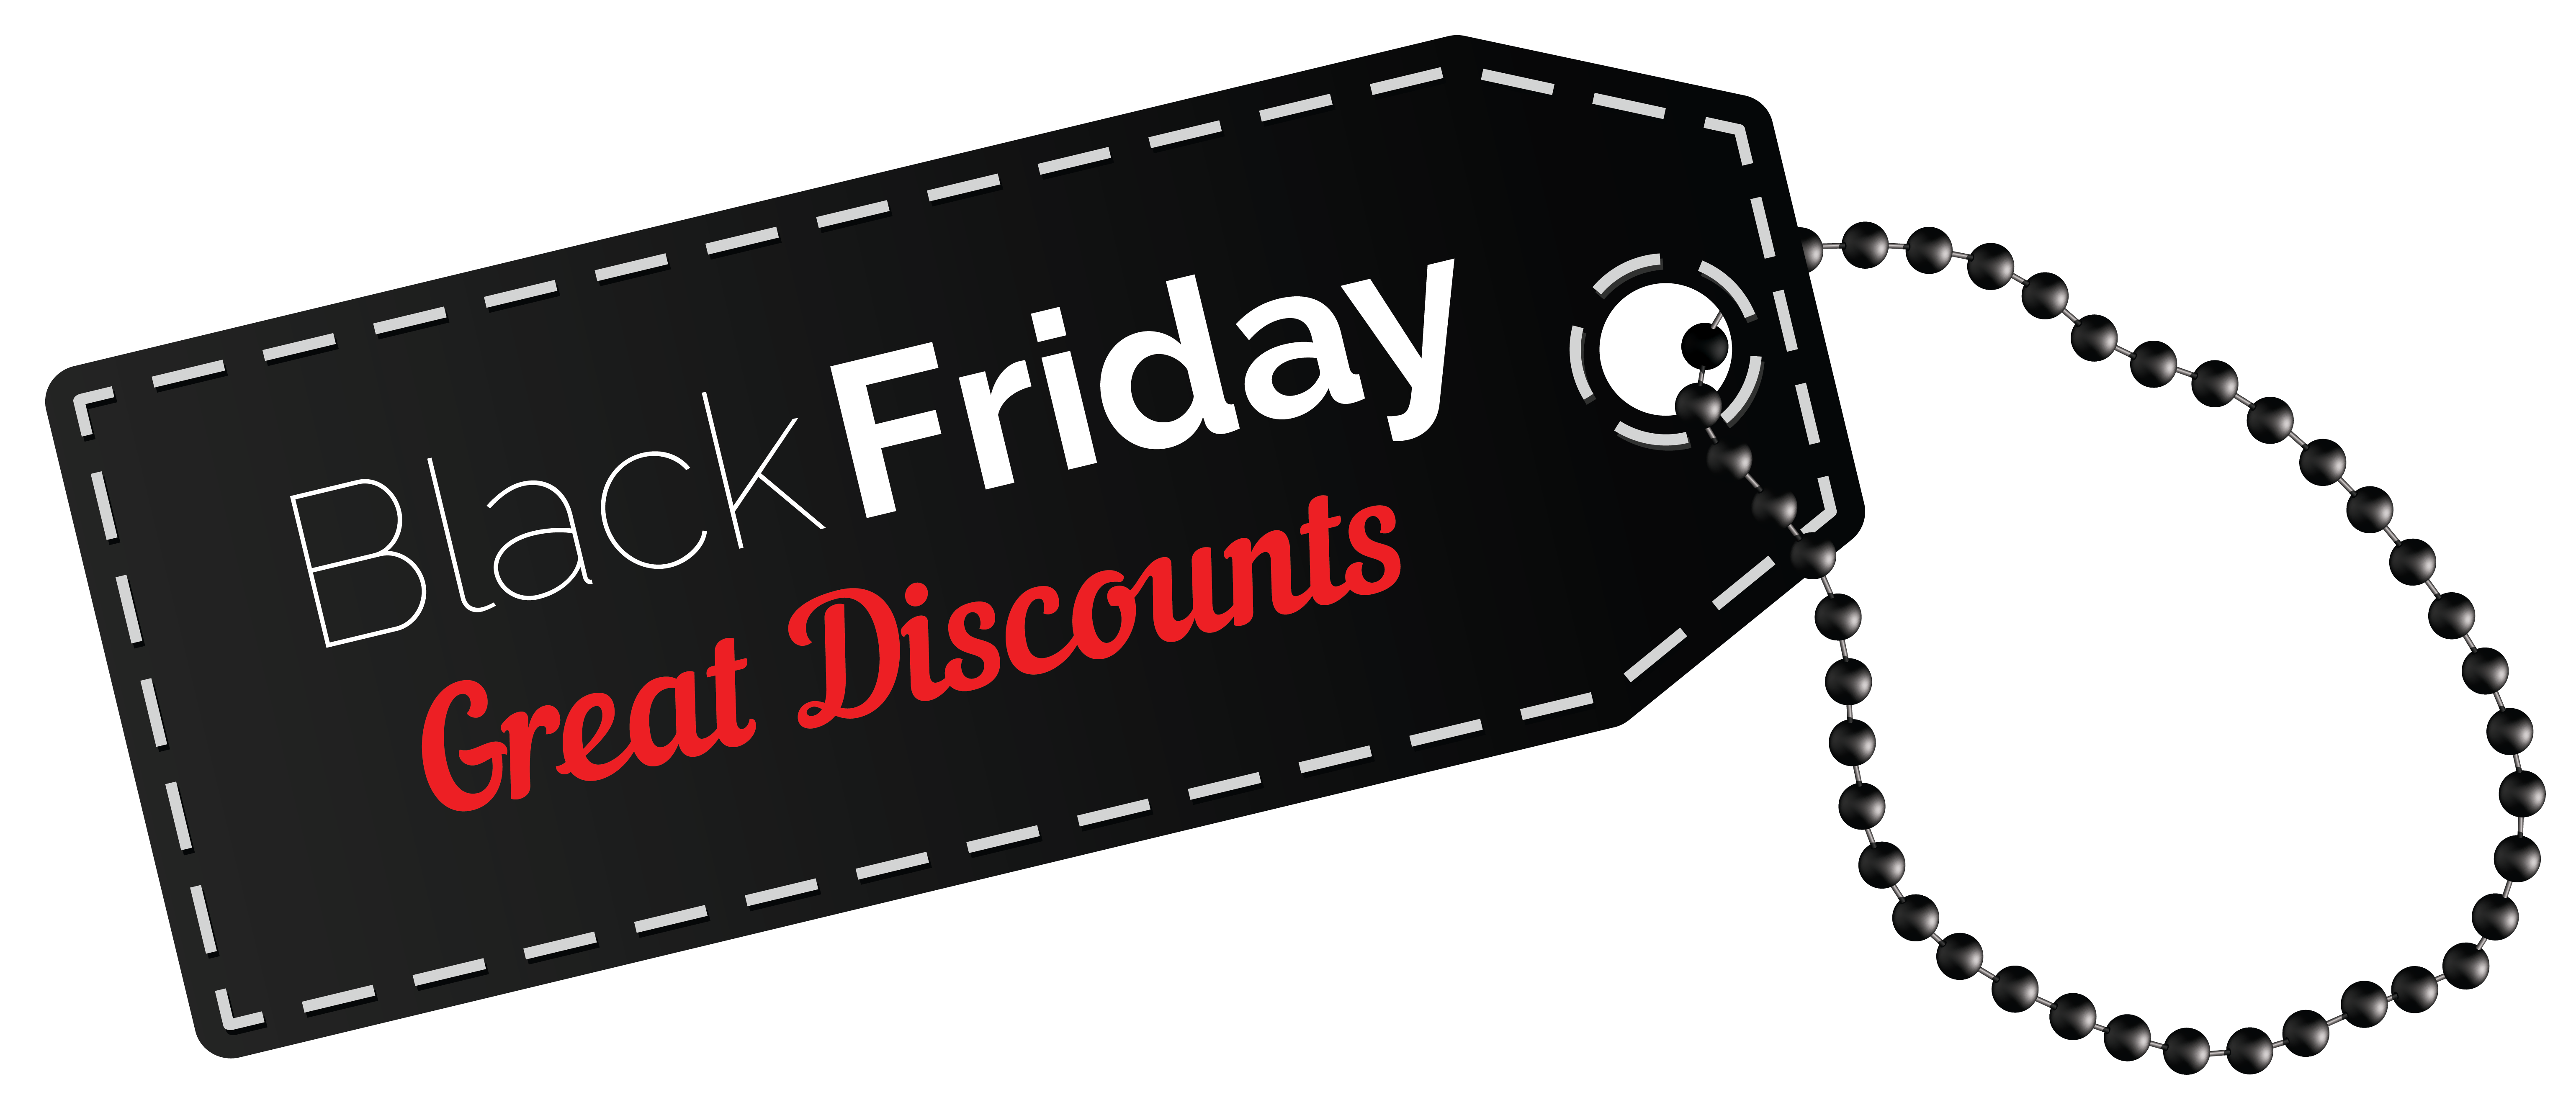 Black Friday Discounts Png image #33097